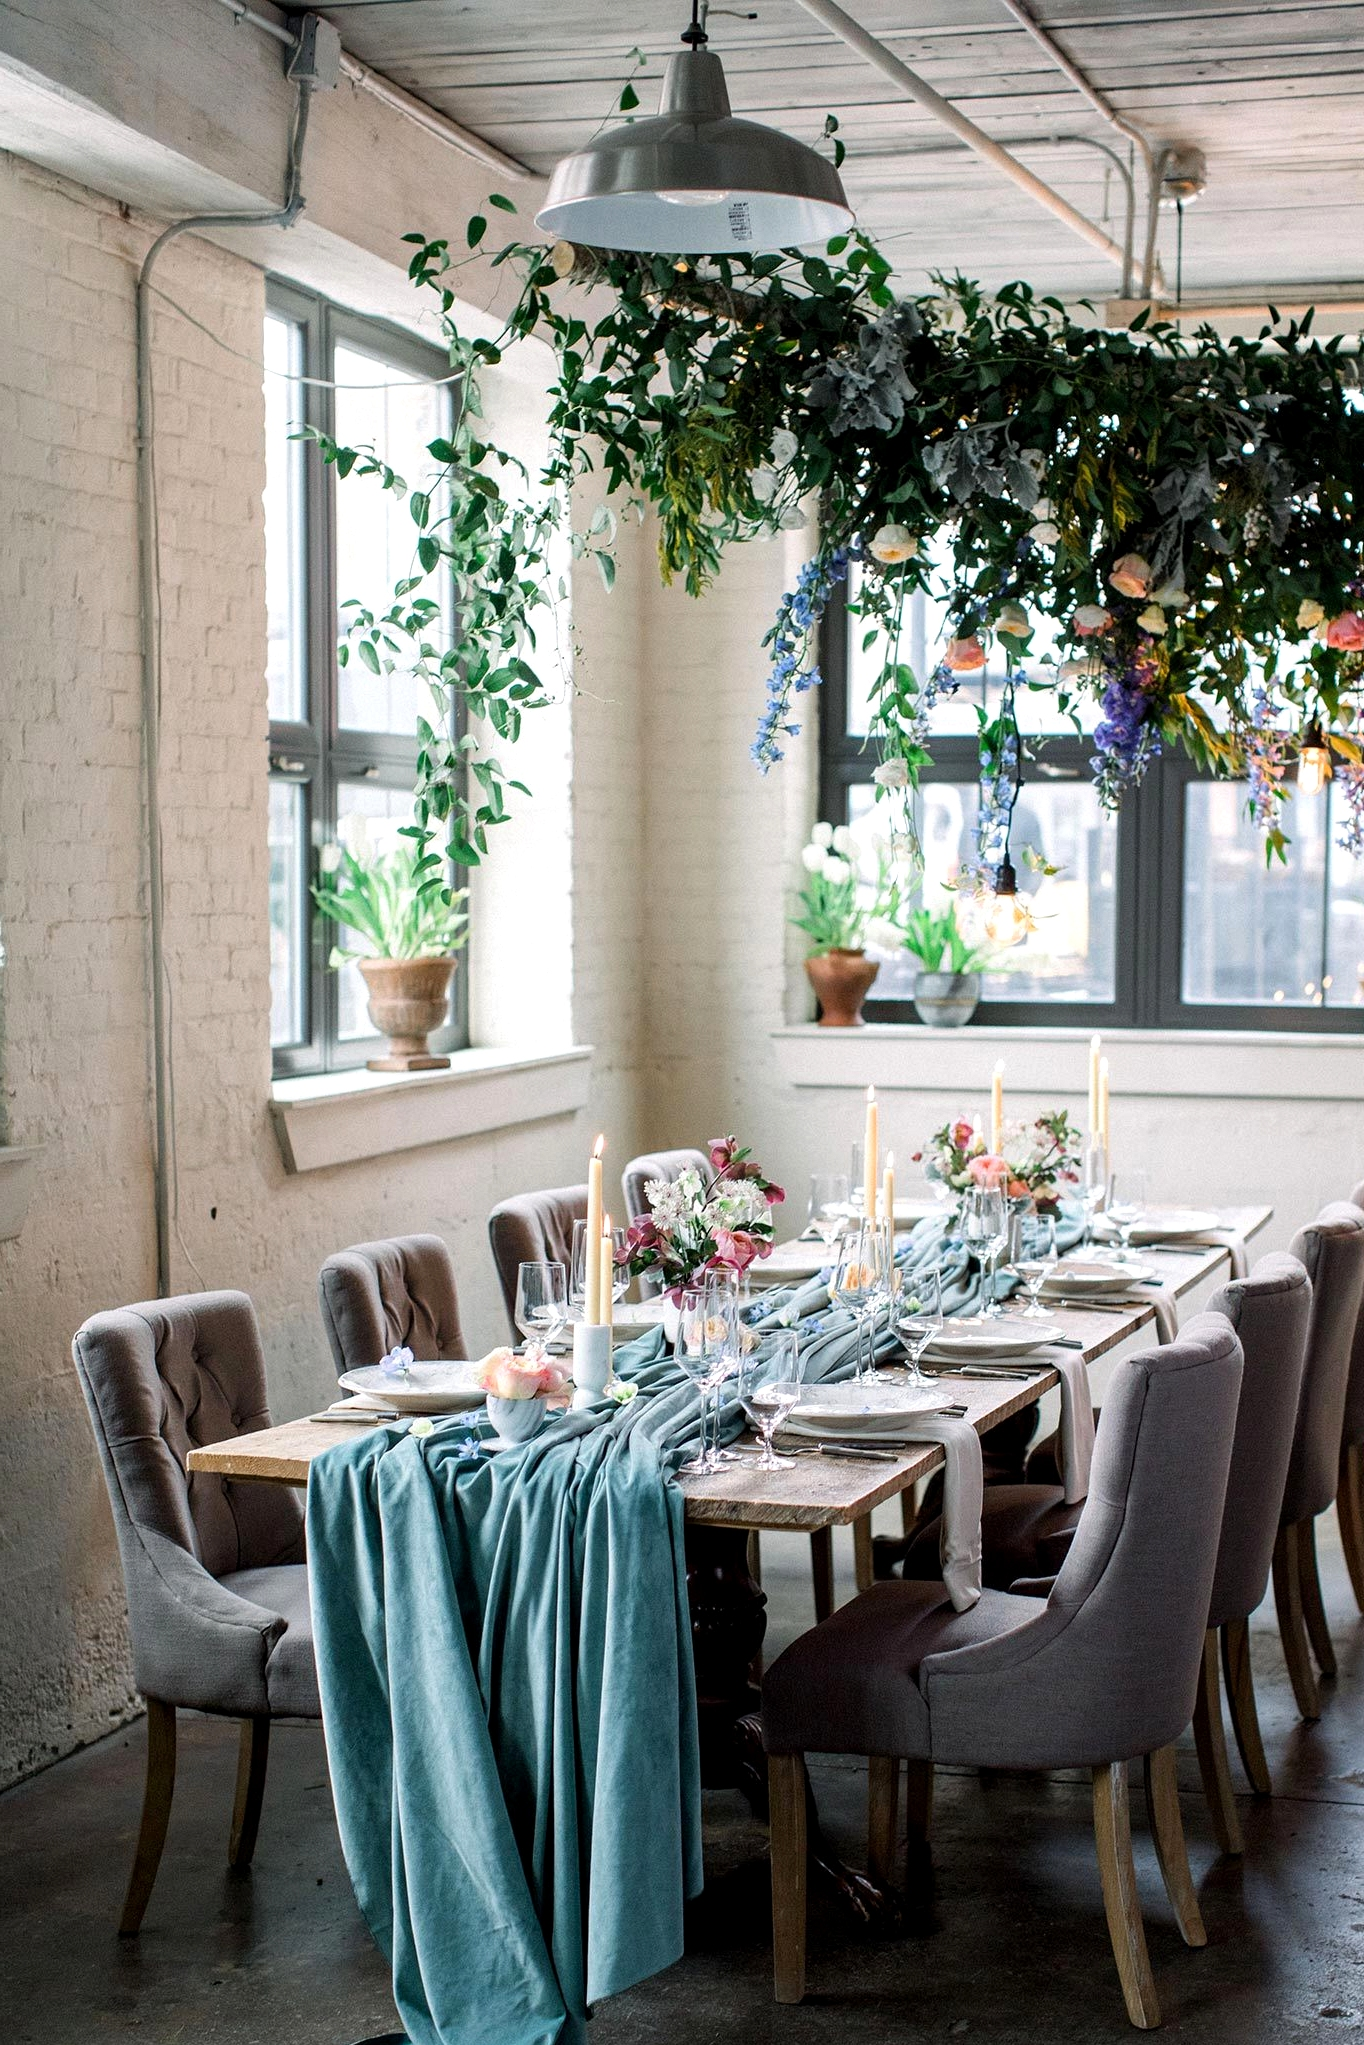 cozy white brick wedding reception with potted plants, a floral canopy and velvet teal table runner